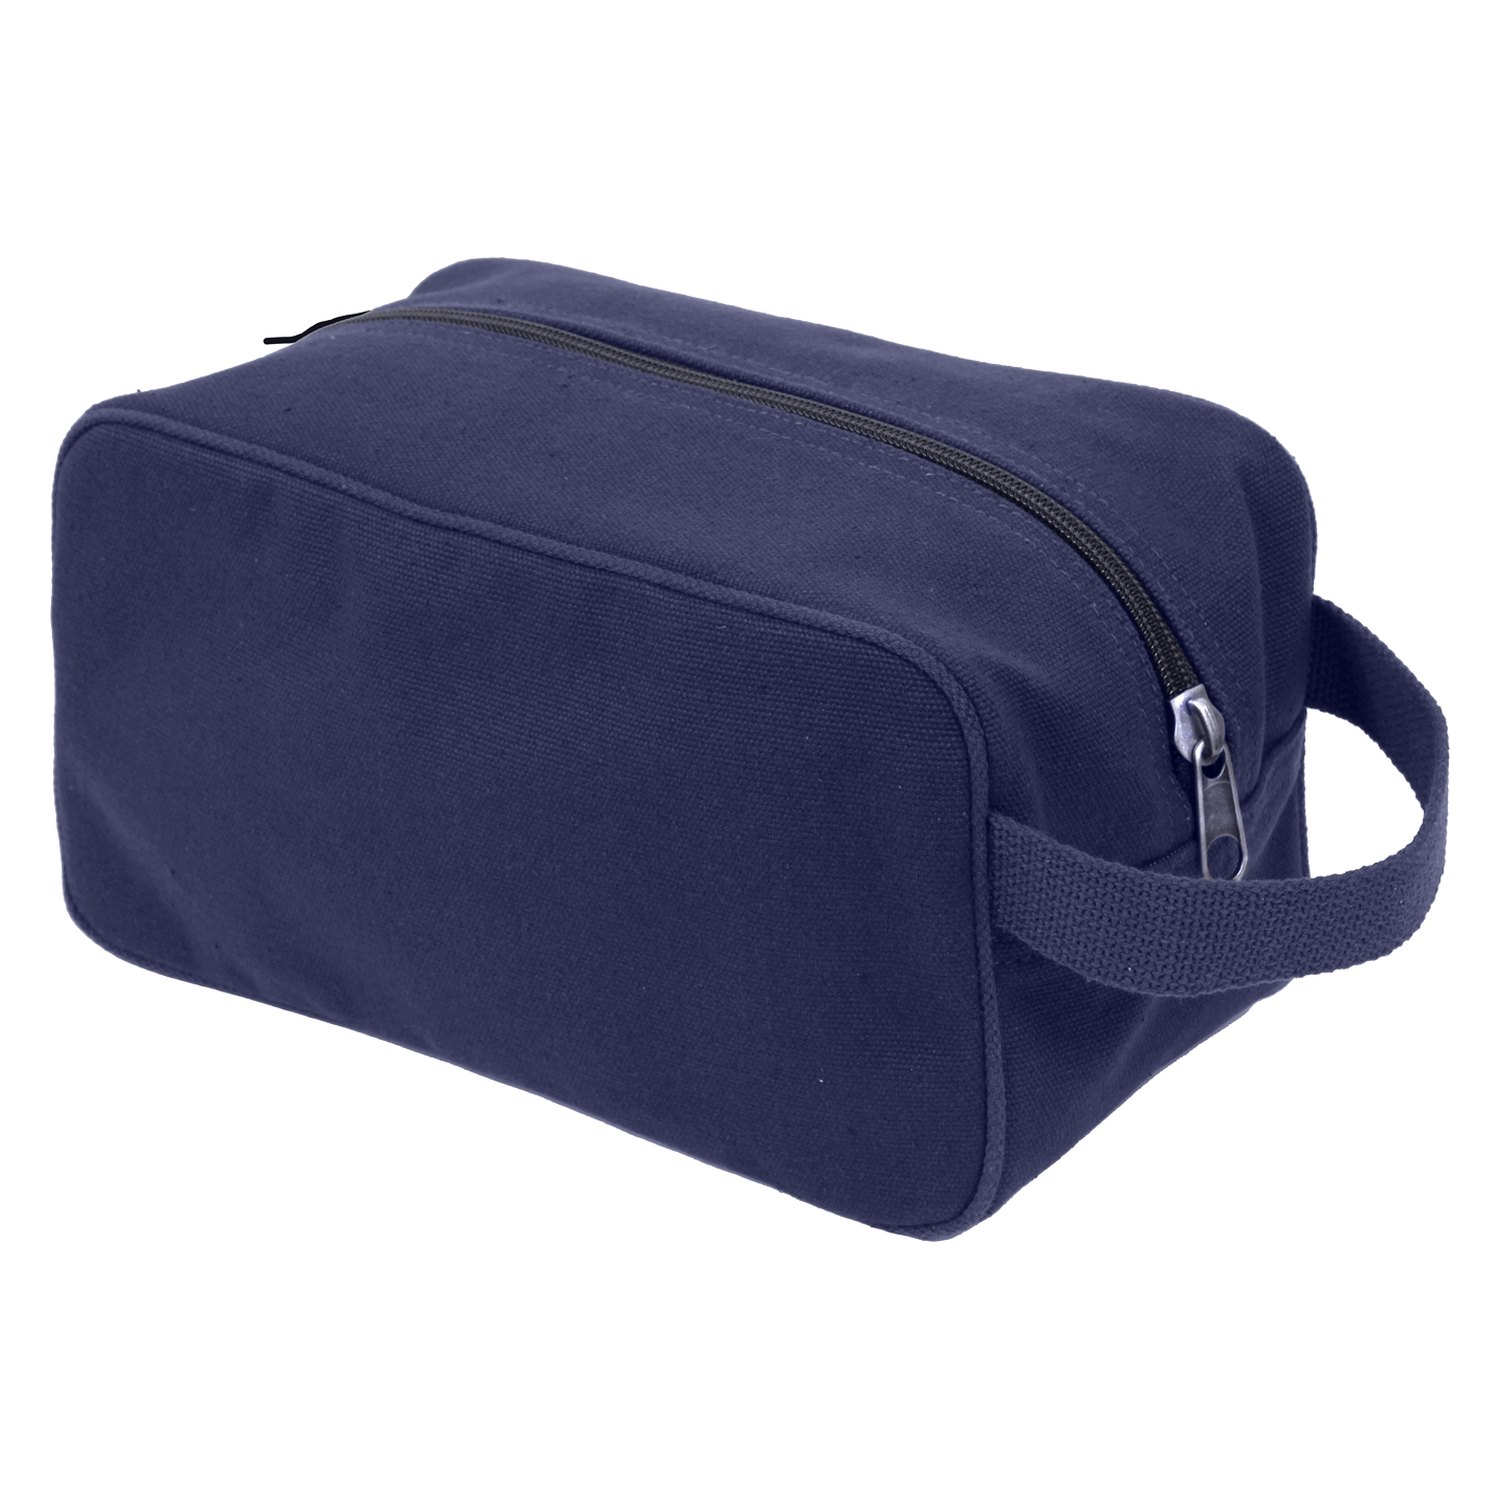 57ba27fee9 Rothco® 8126-Navy-Blue - Canvas Travel Bag - RECREATIONiD.com